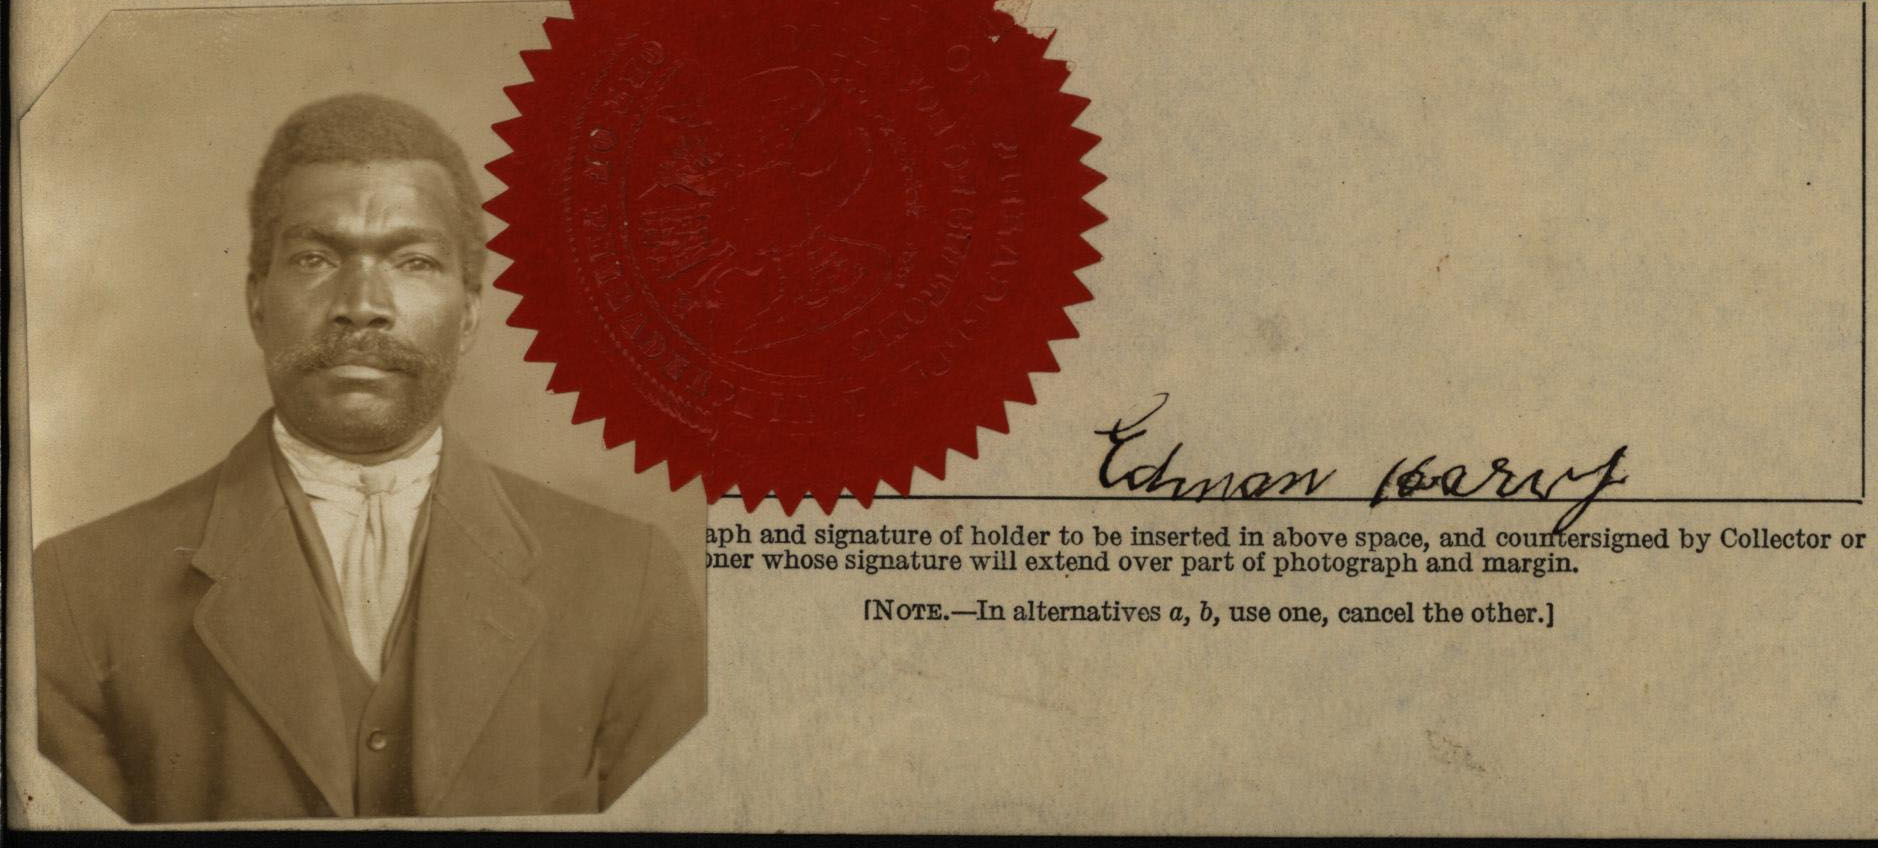 Edmond Harvey, seaman's certificate of intention papers, detail, 1918